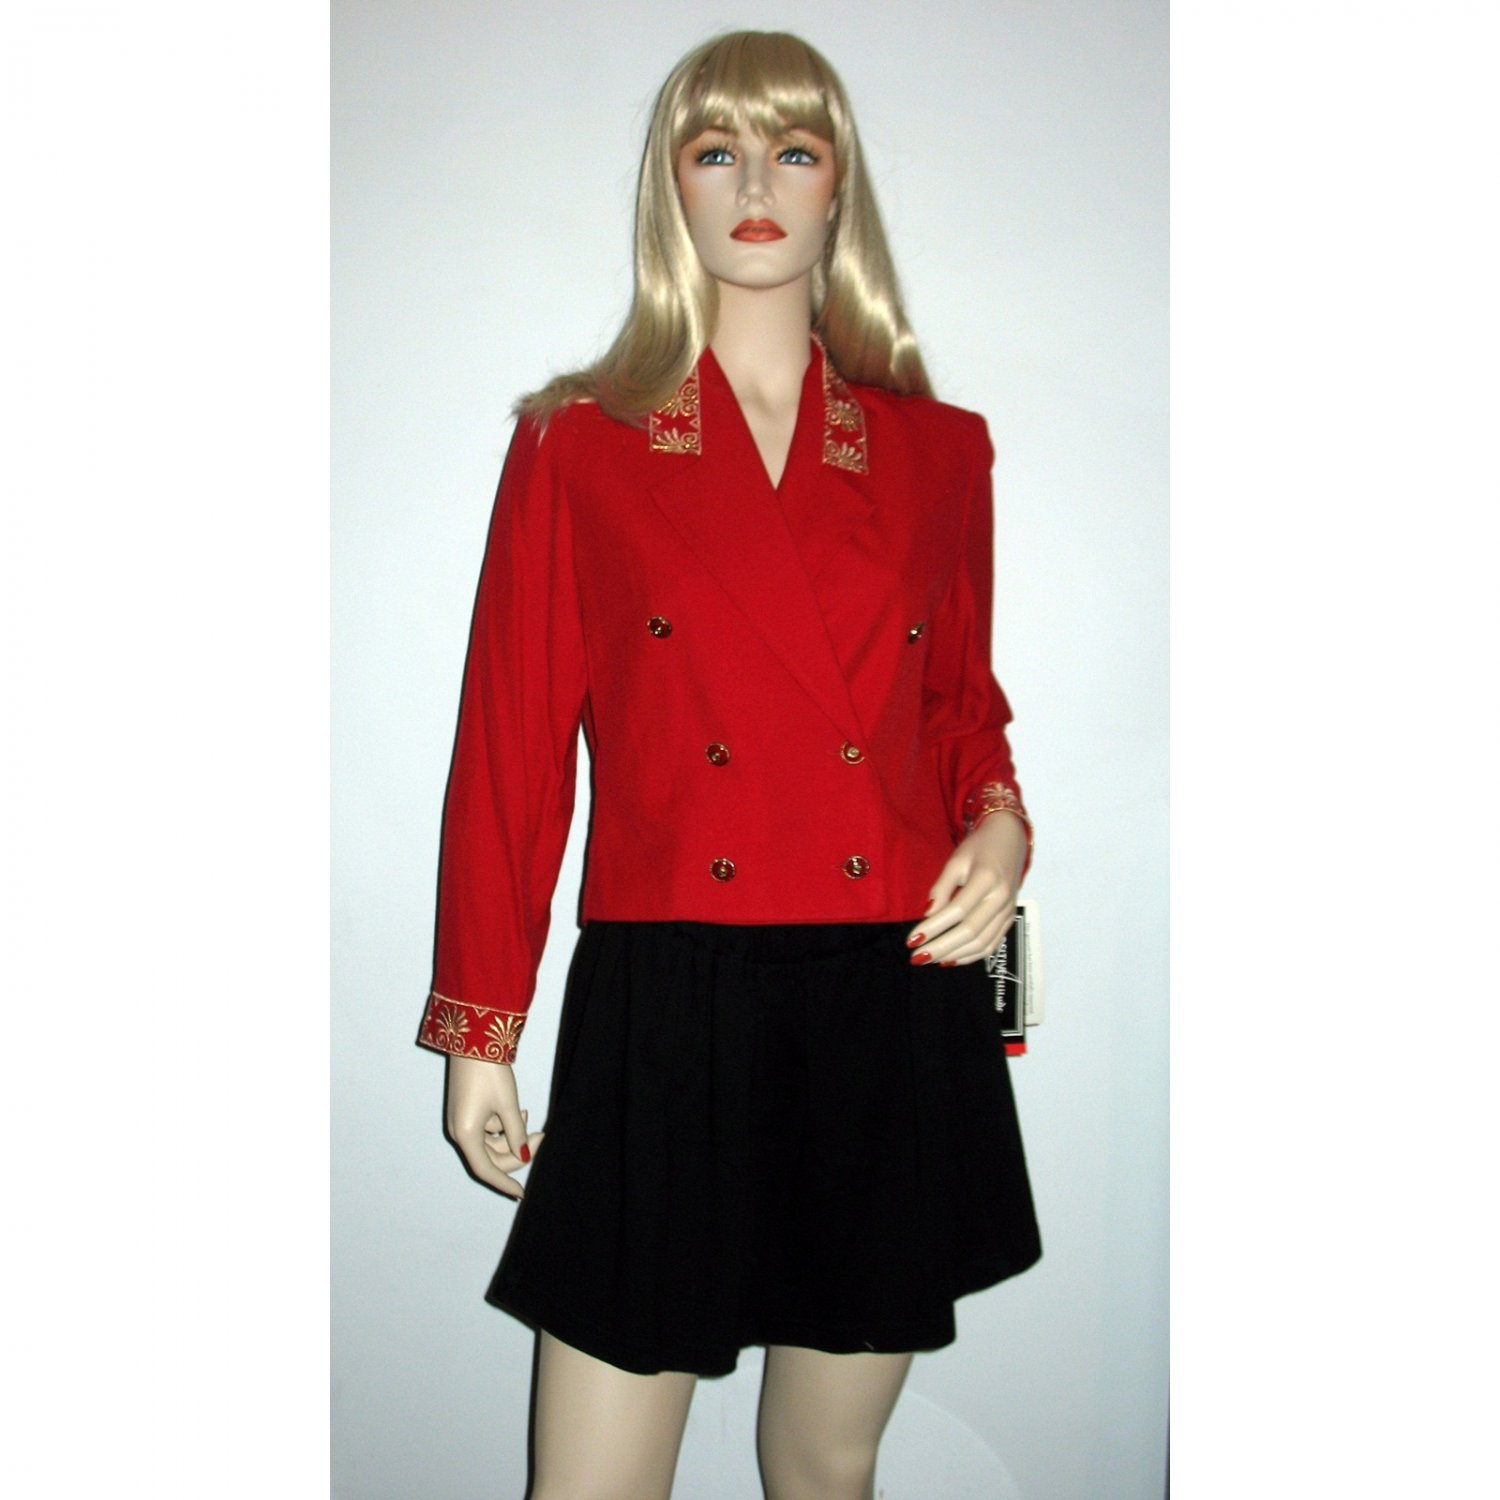 80s Red Military Jacket Cropped Top Blazer by Positive Attitude Size 8 M Medium